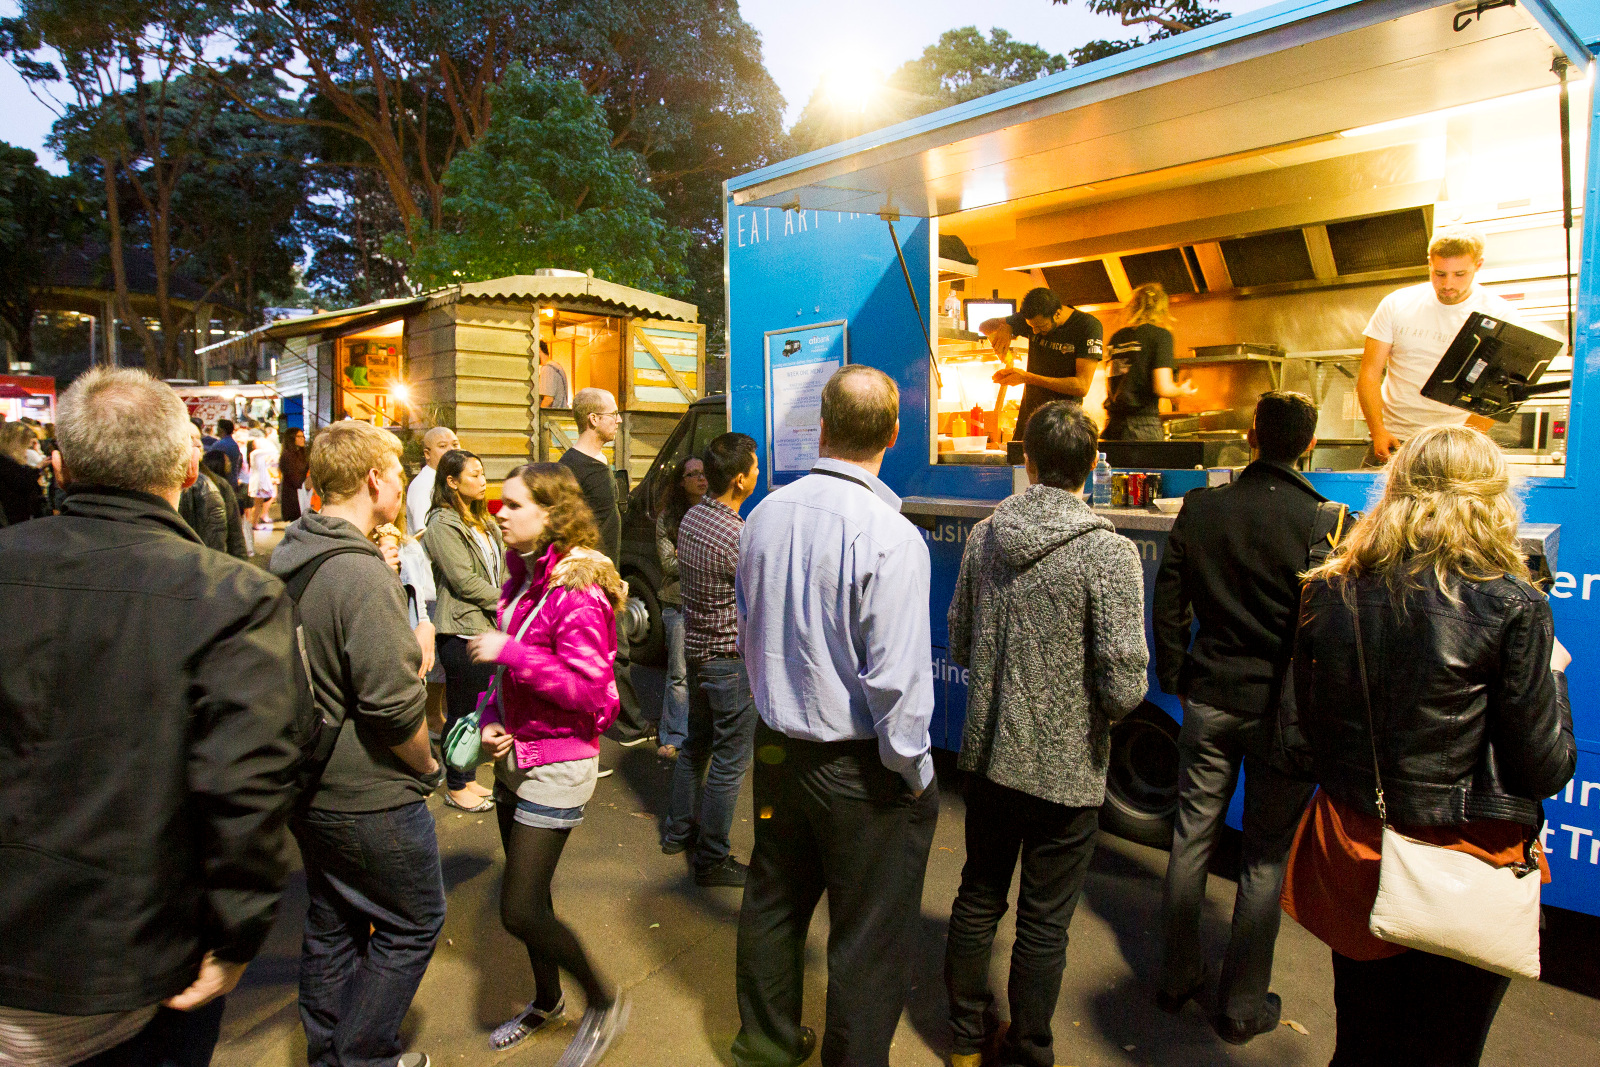 Sydney, AUS: Where To Find Australia's Best Food Trucks